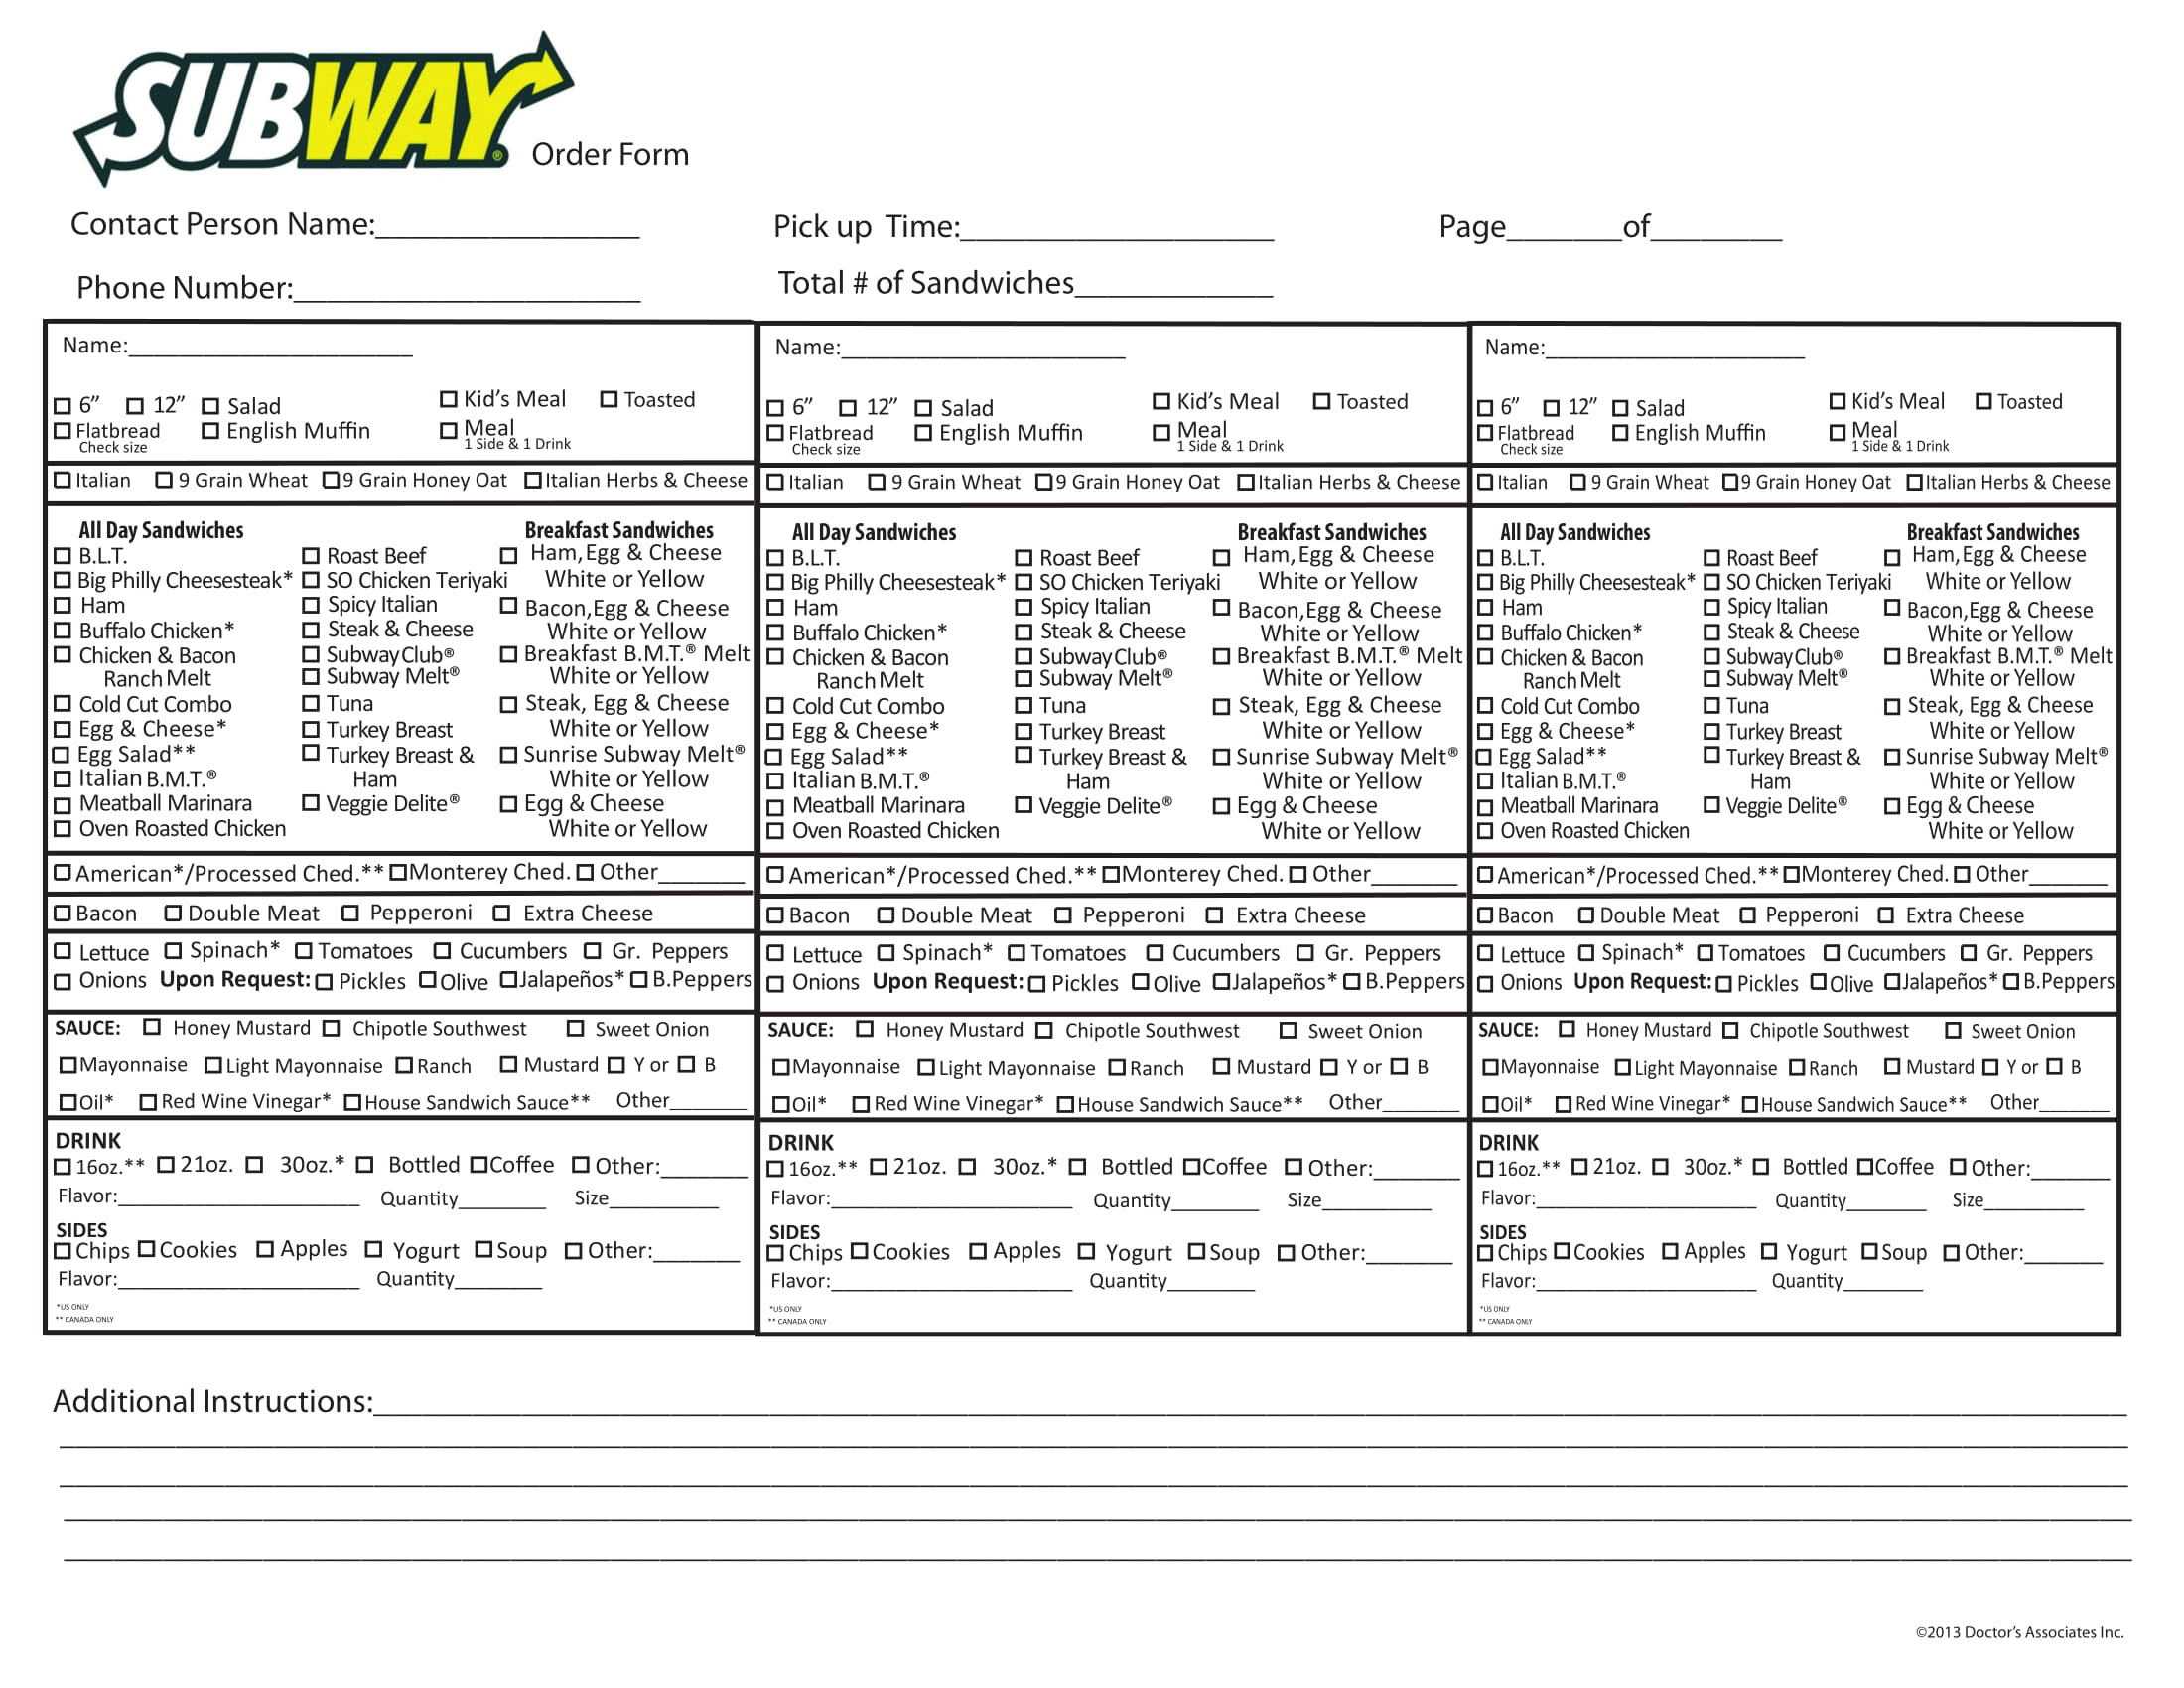 photograph regarding Subway Menu Printable referred to as Absolutely free 29+ Menu Types inside PDF Document